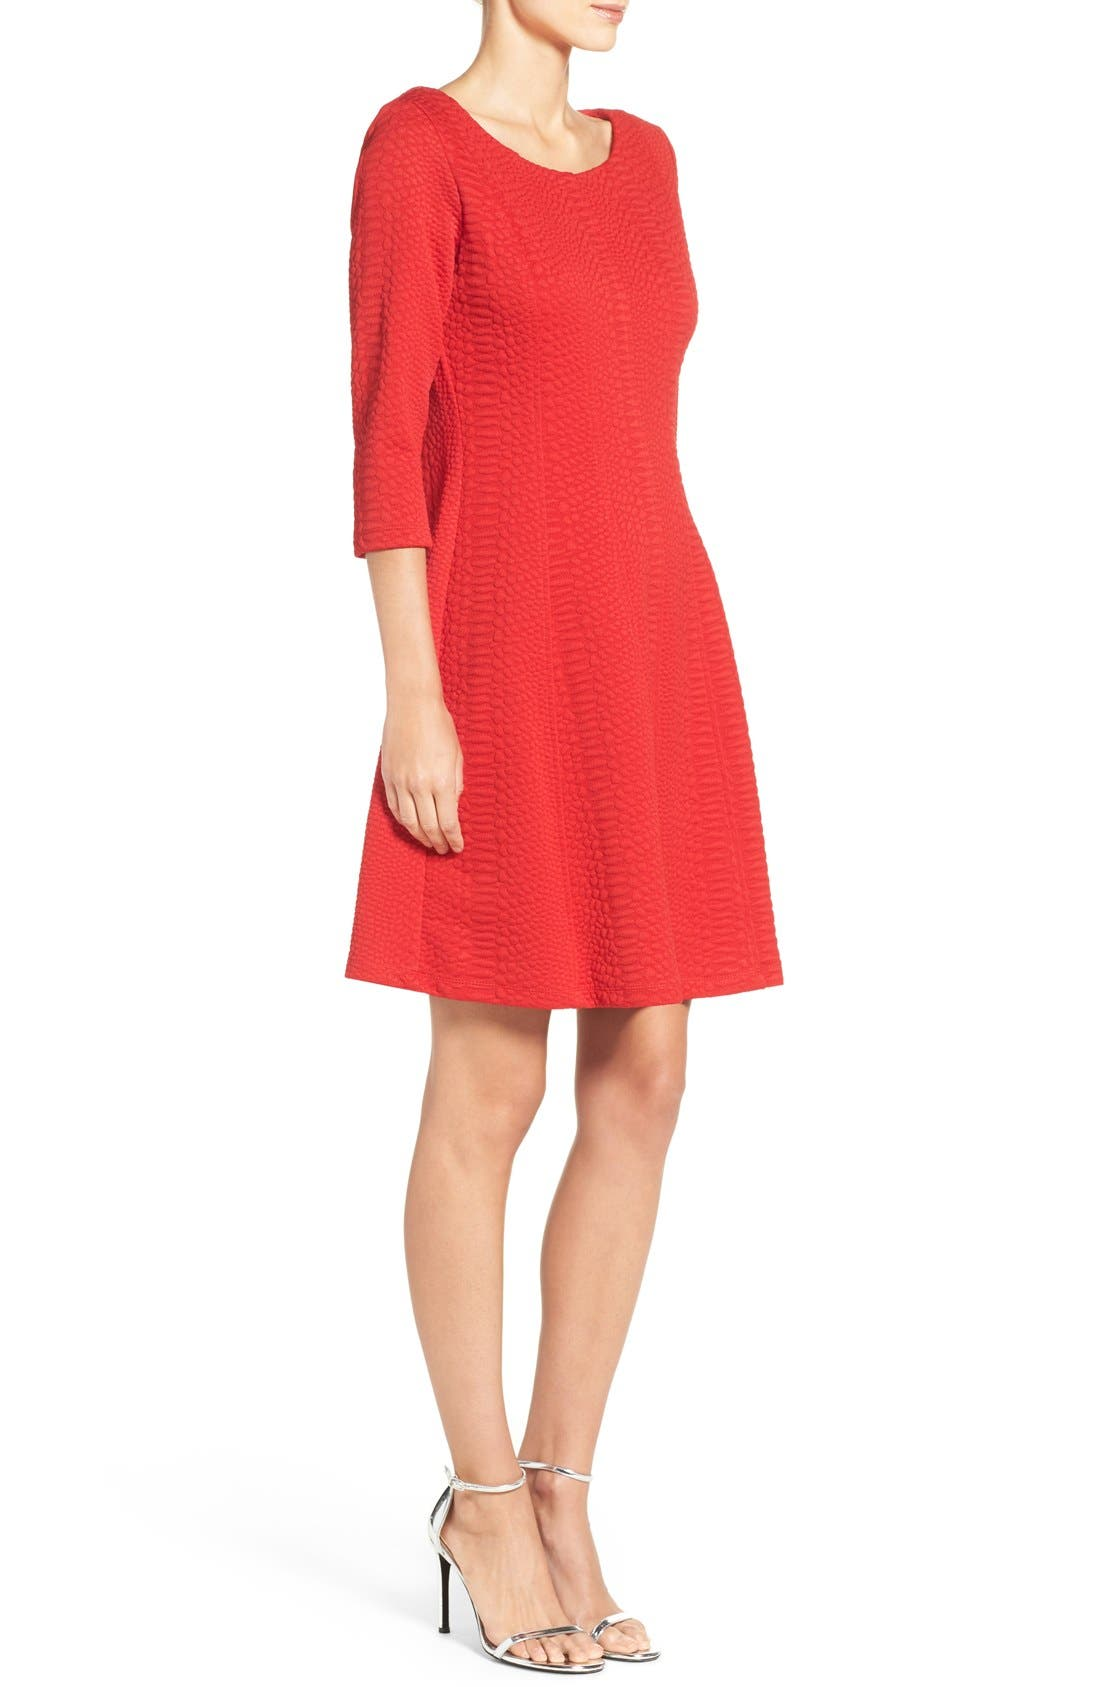 Alternate Image 3  - Taylor Dresses Jacquard Knit Fit & Flare Dress